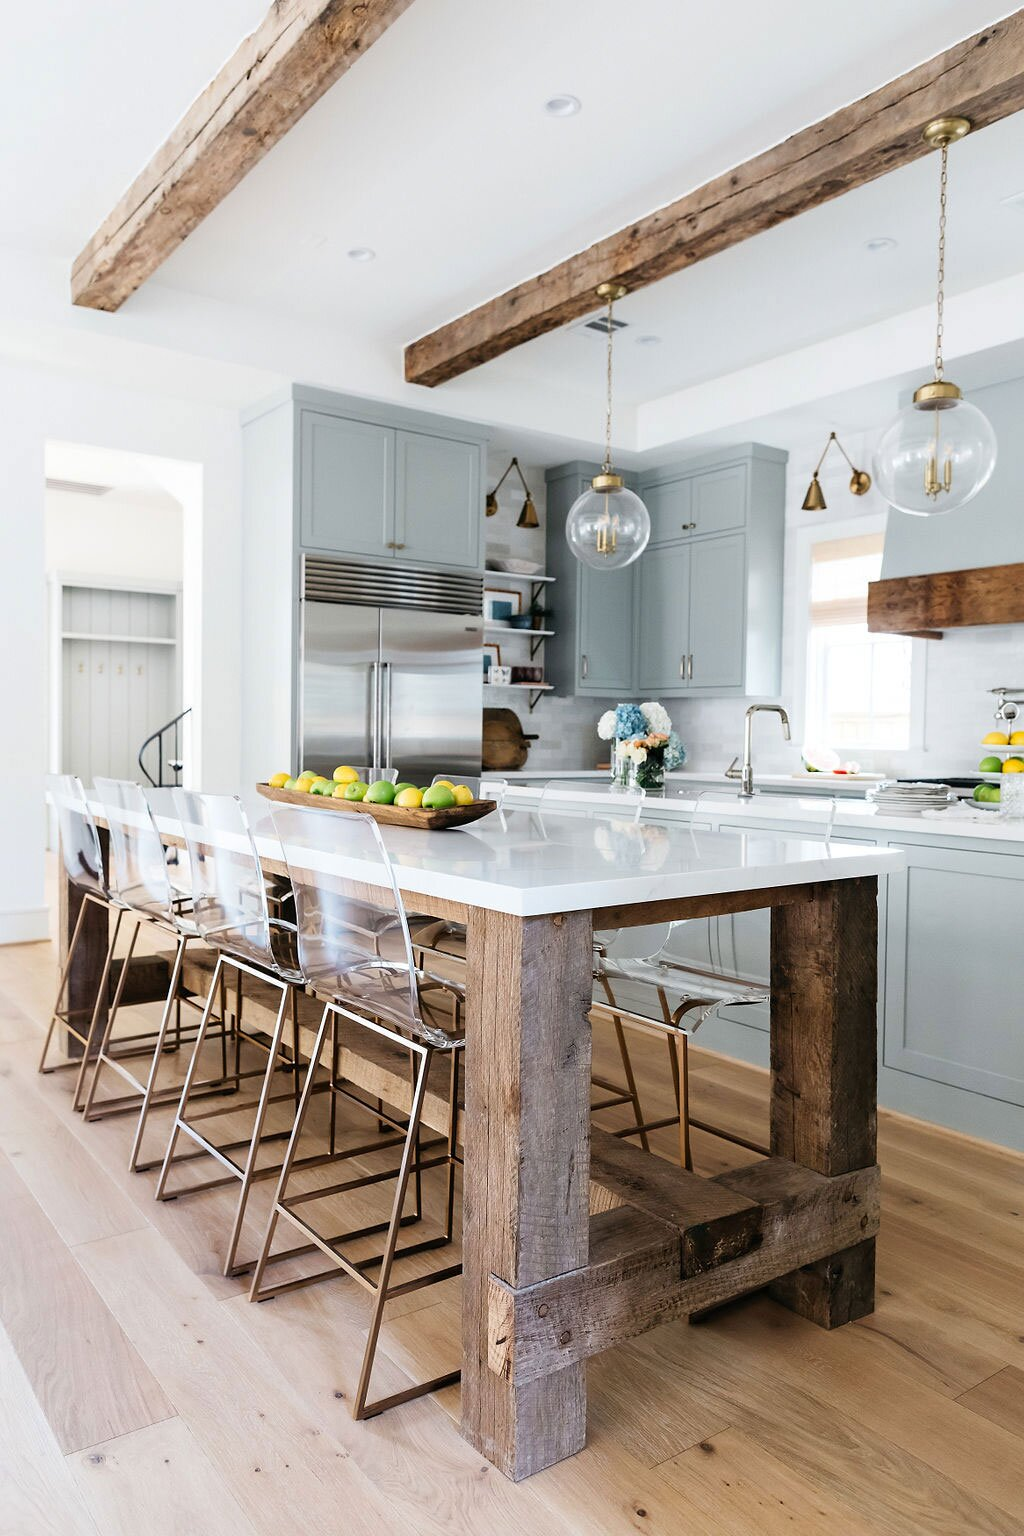 10 Designer Favorite Paint Color Ideas To Give Your Kitchen Cabinets An Instant Refresh Southern Living